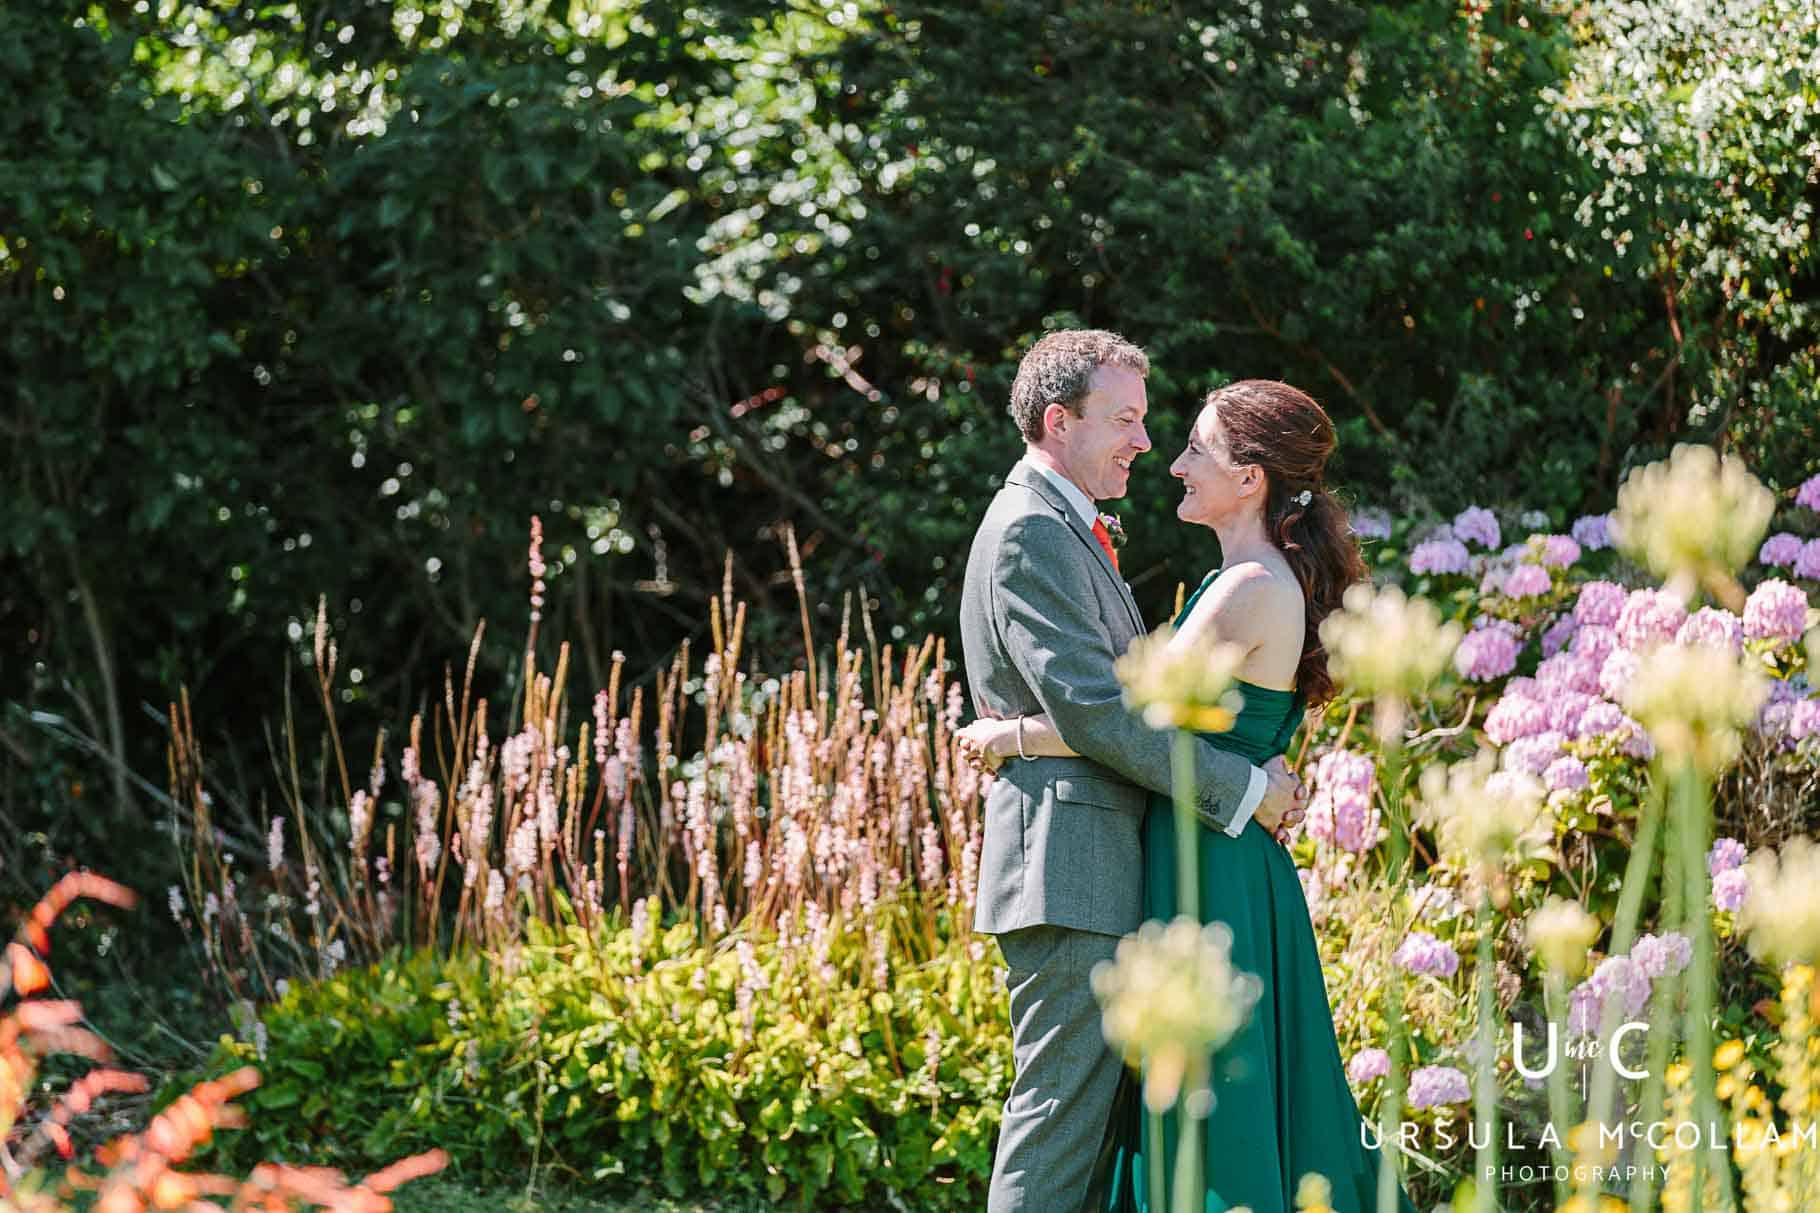 Bride in a green dress cuddling her groom